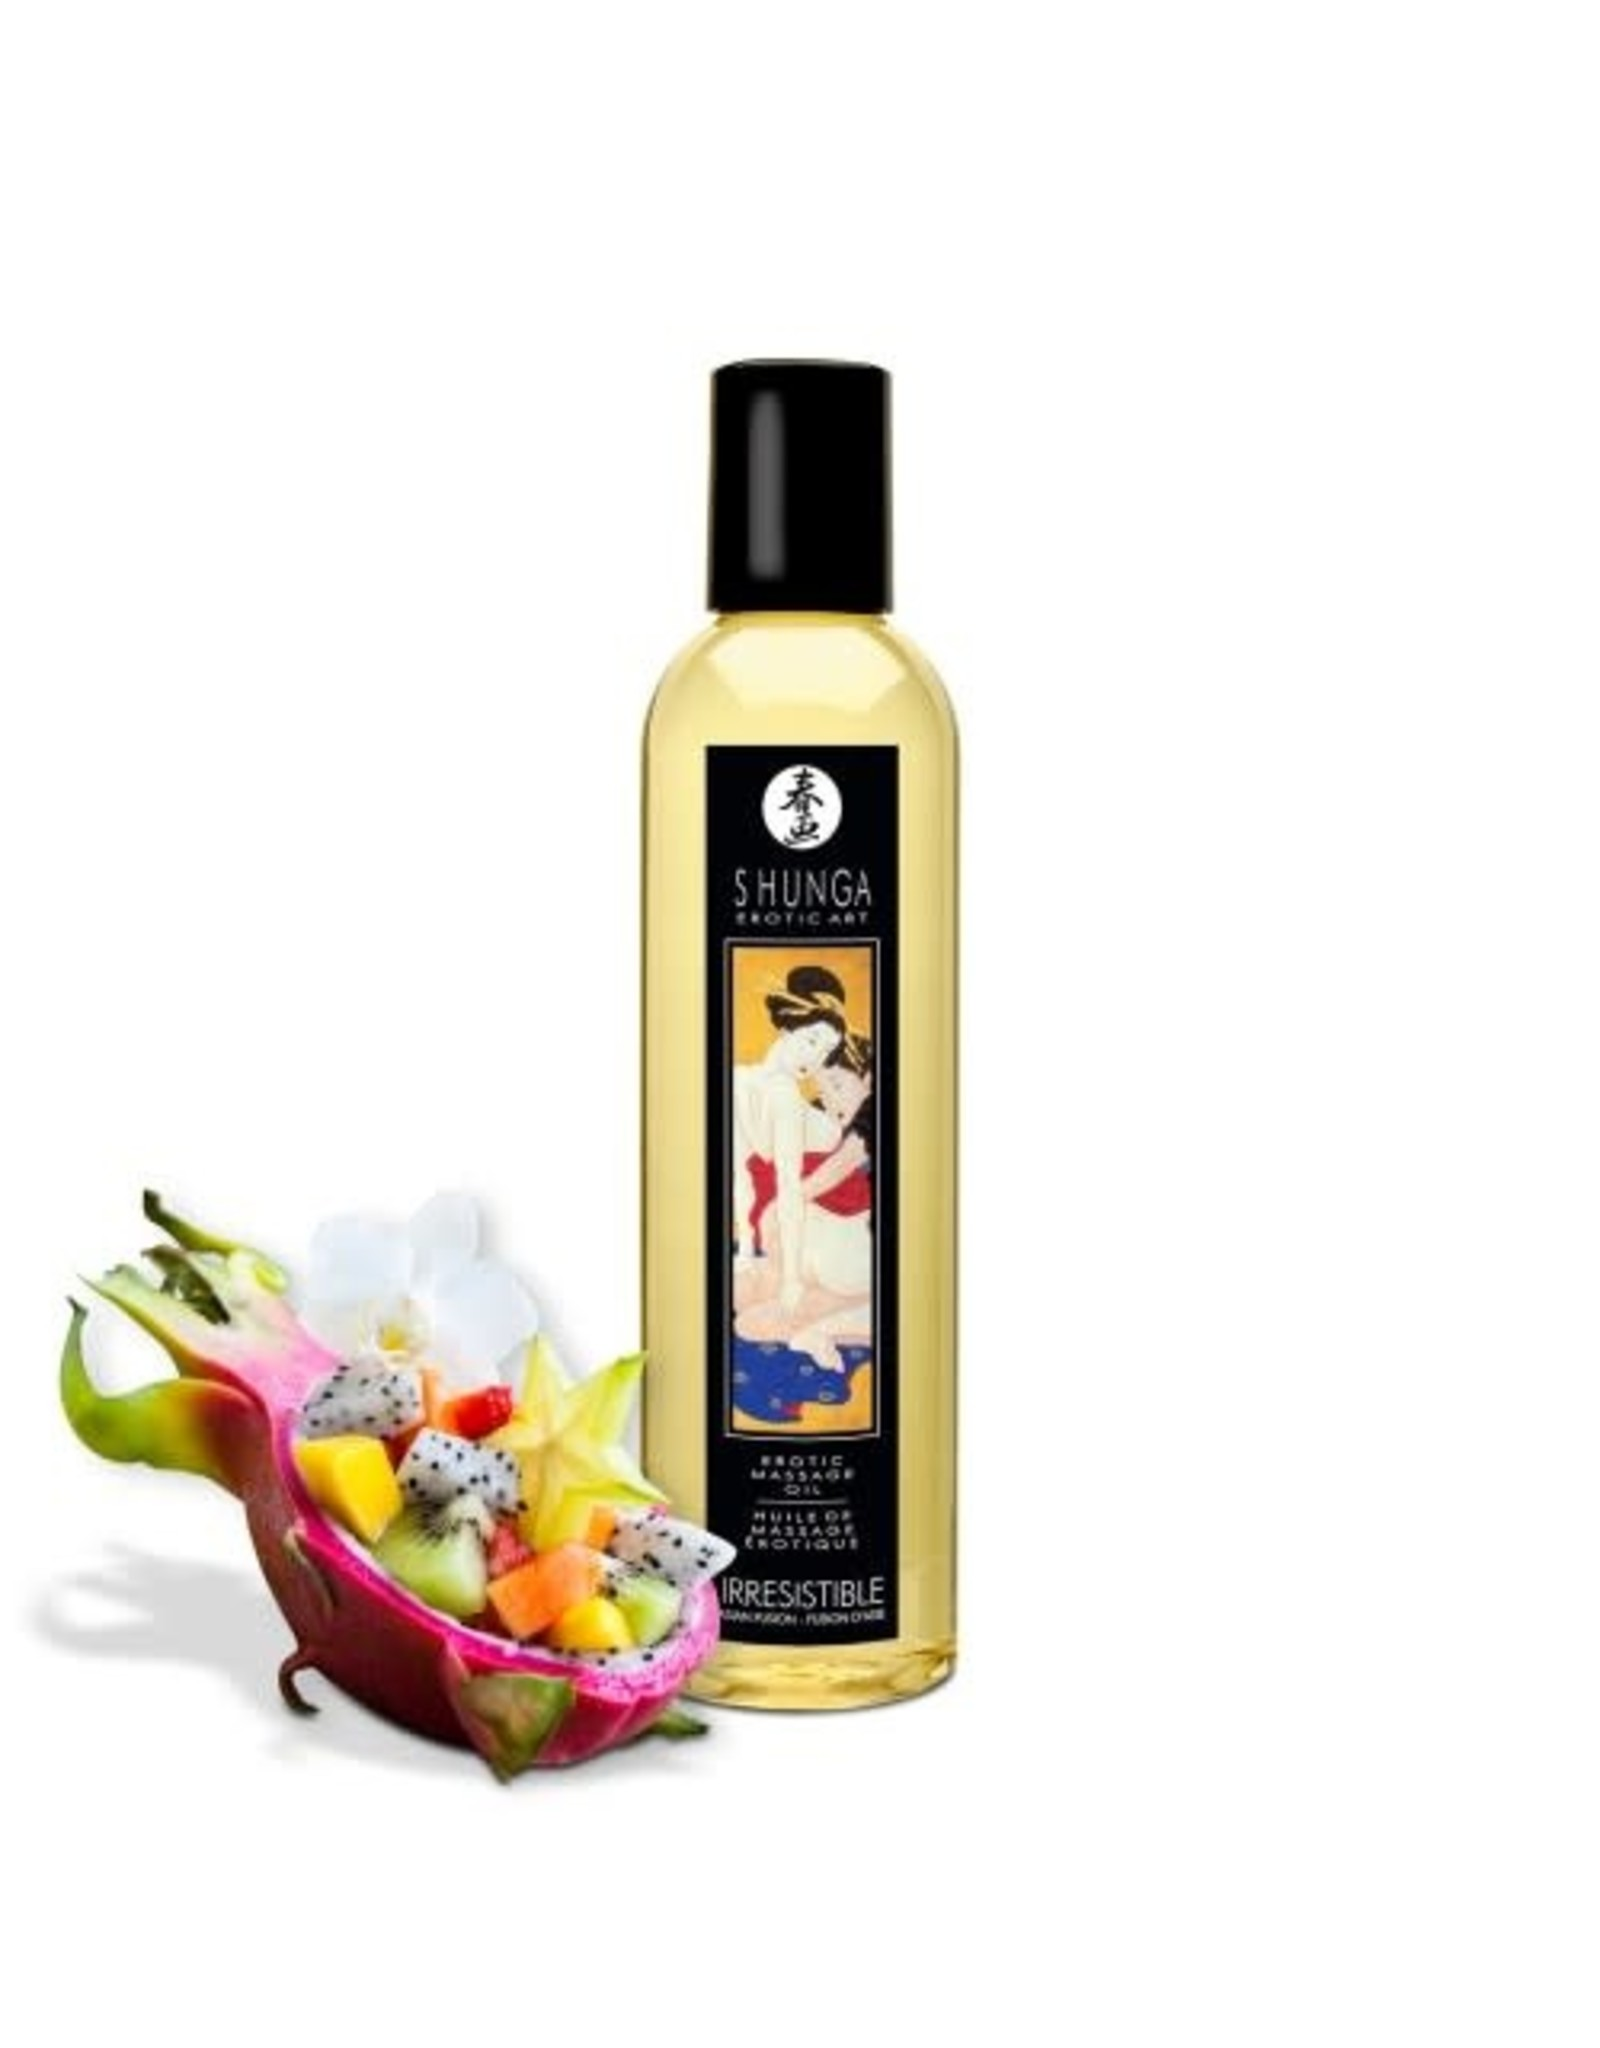 Shunga Shunga Erotic Massage Oil - Irresistible